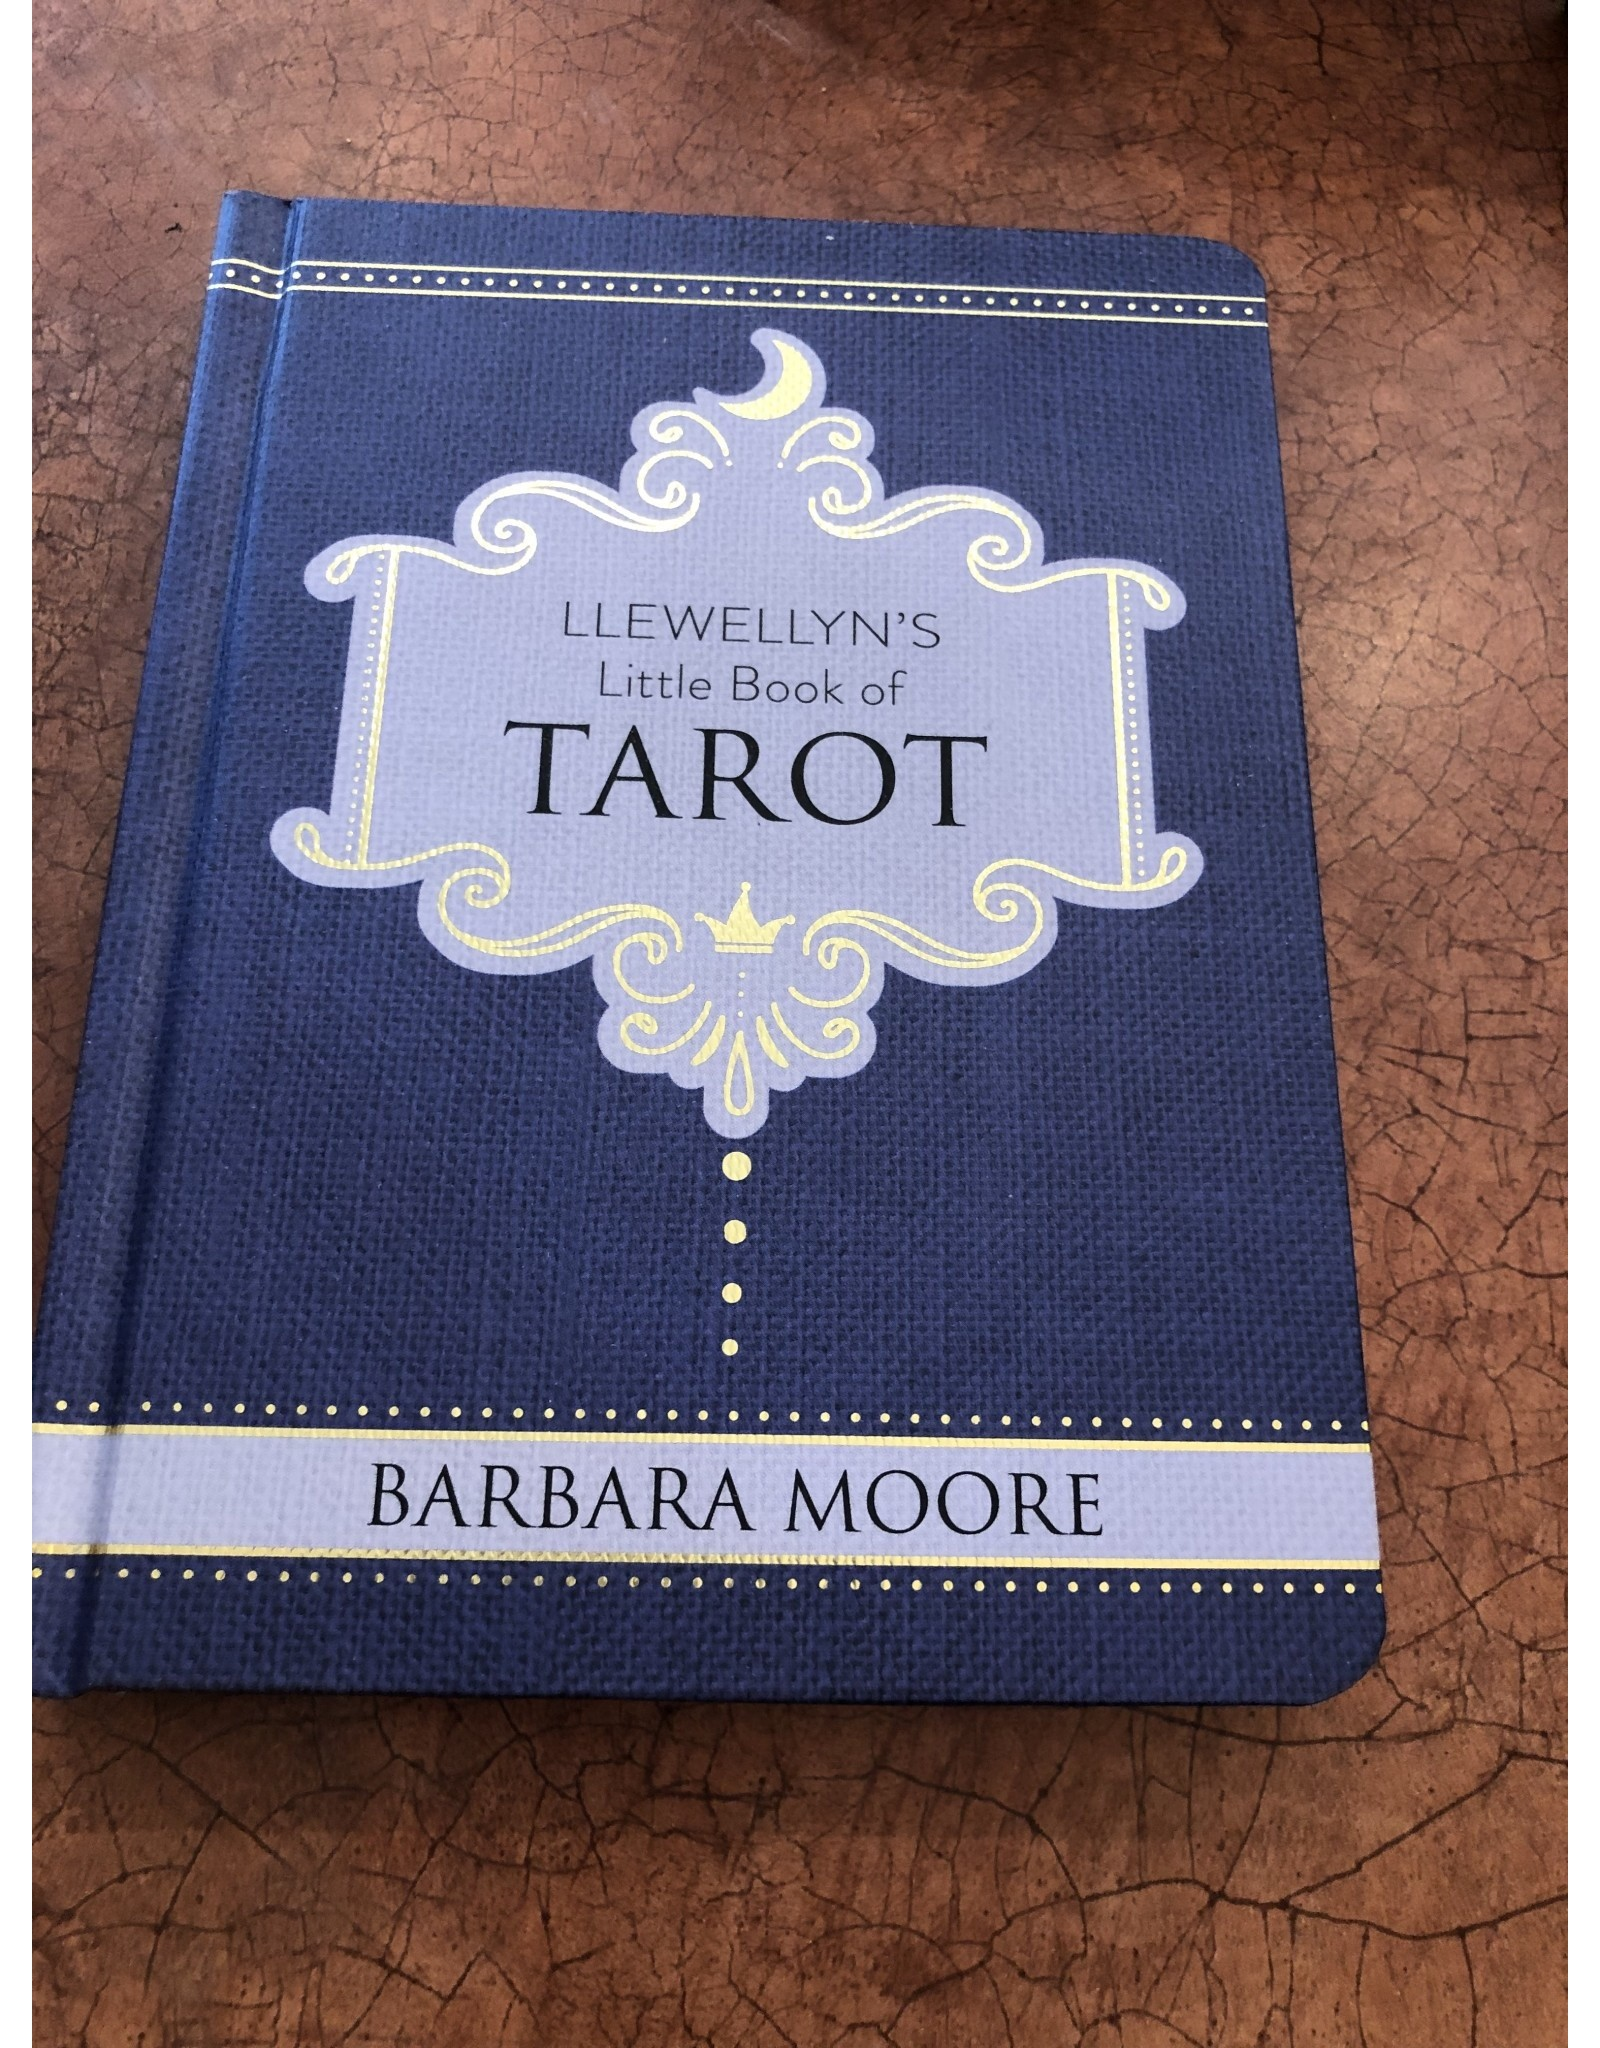 Llewellyn's Little Book of Tarot